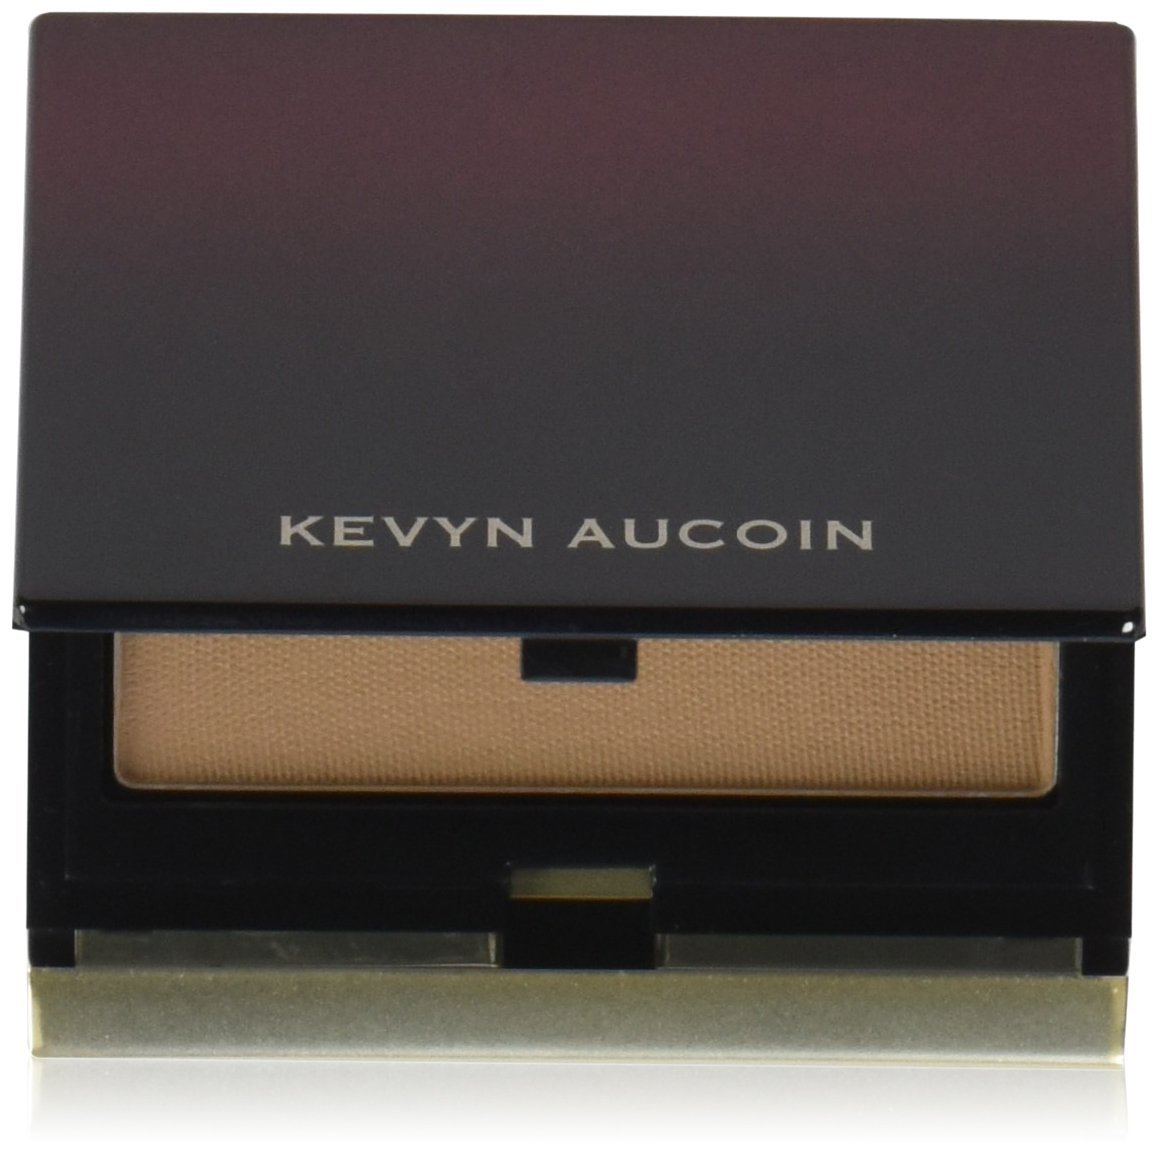 Kevyn Aucoin The Sculpting Powder (New Packaging), Medium, 0.11 Ounce by Kevyn Aucoin